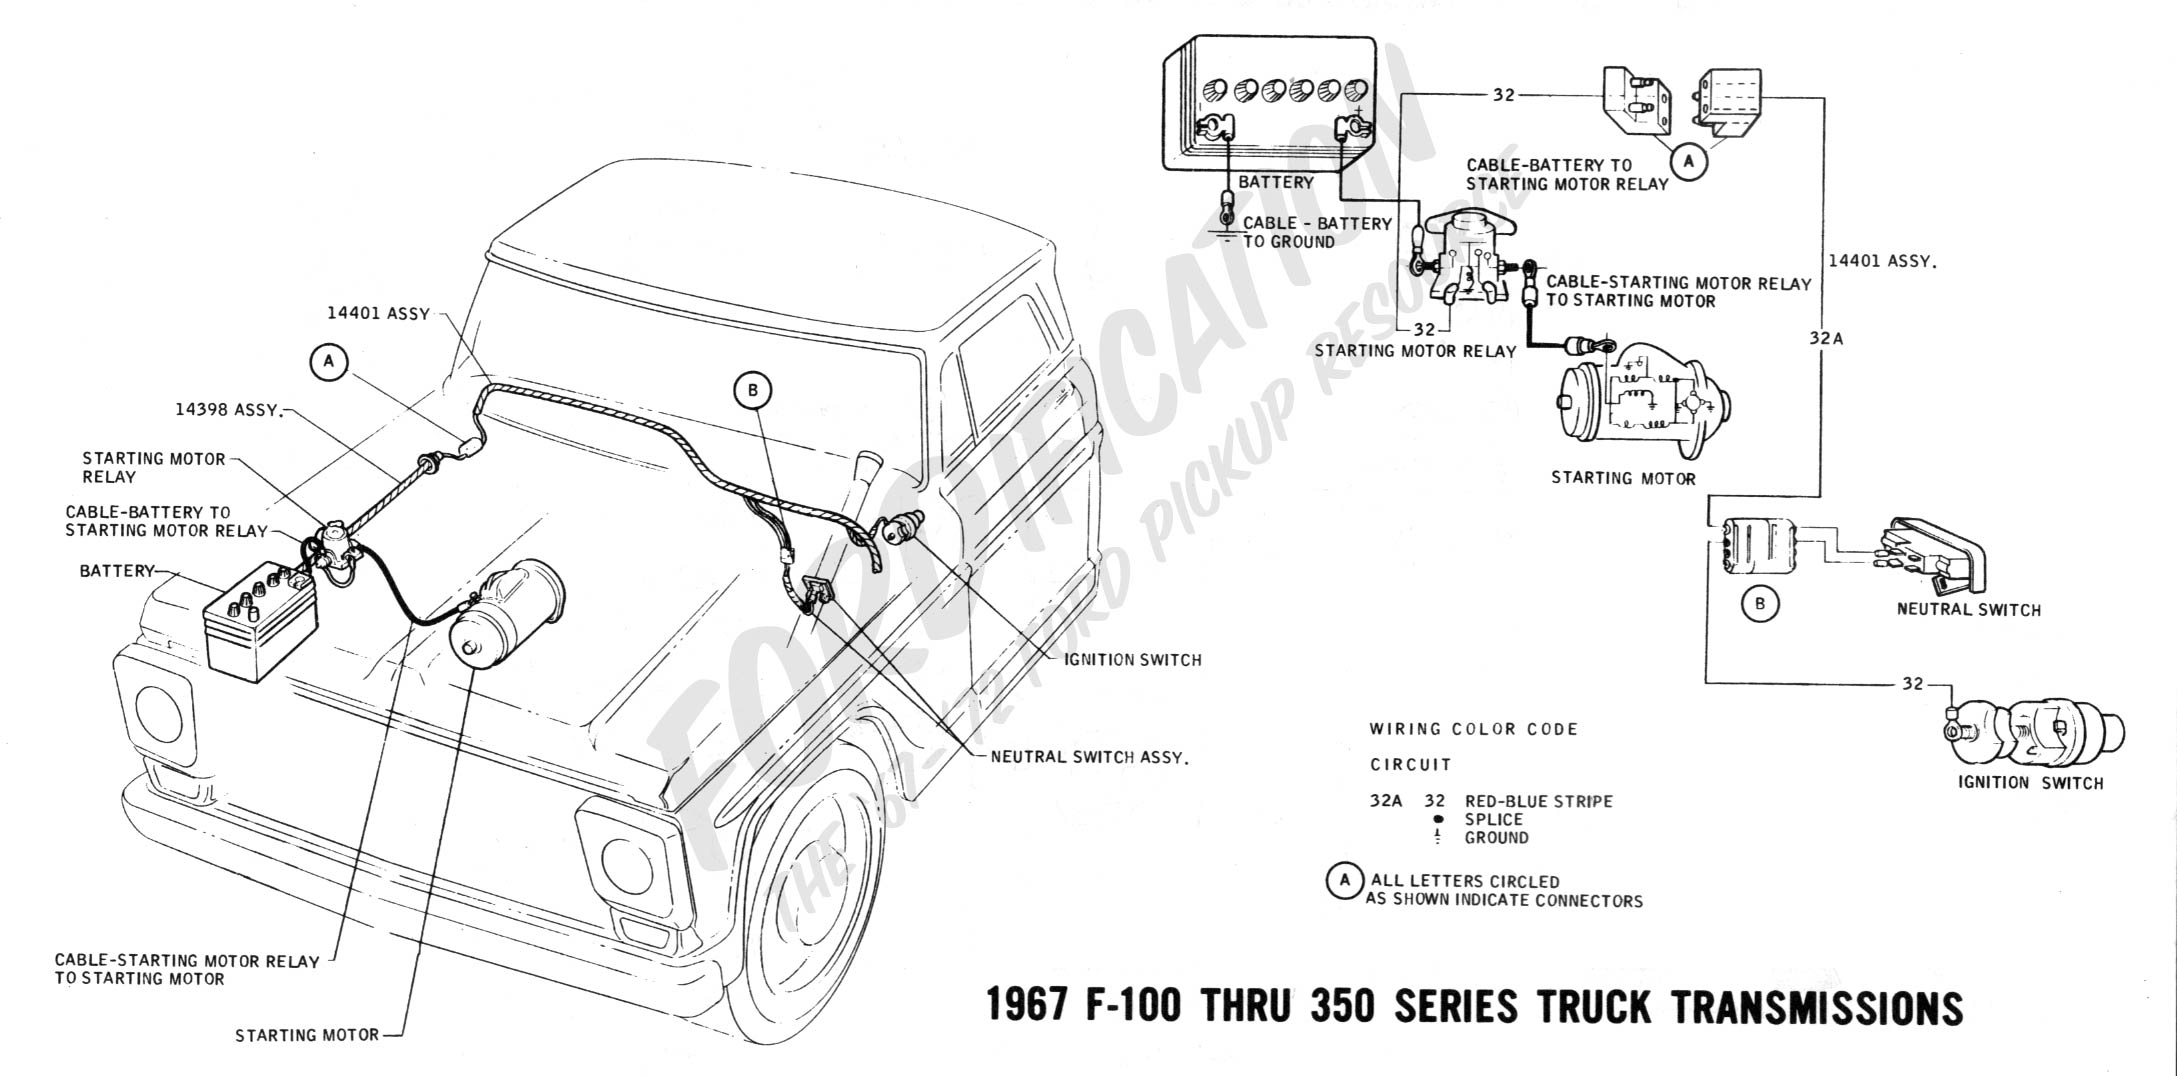 1979 F150 Battery Diagram Fe Wiring Diagrams For Pickups 77 Ford F100 Ignition Highboy